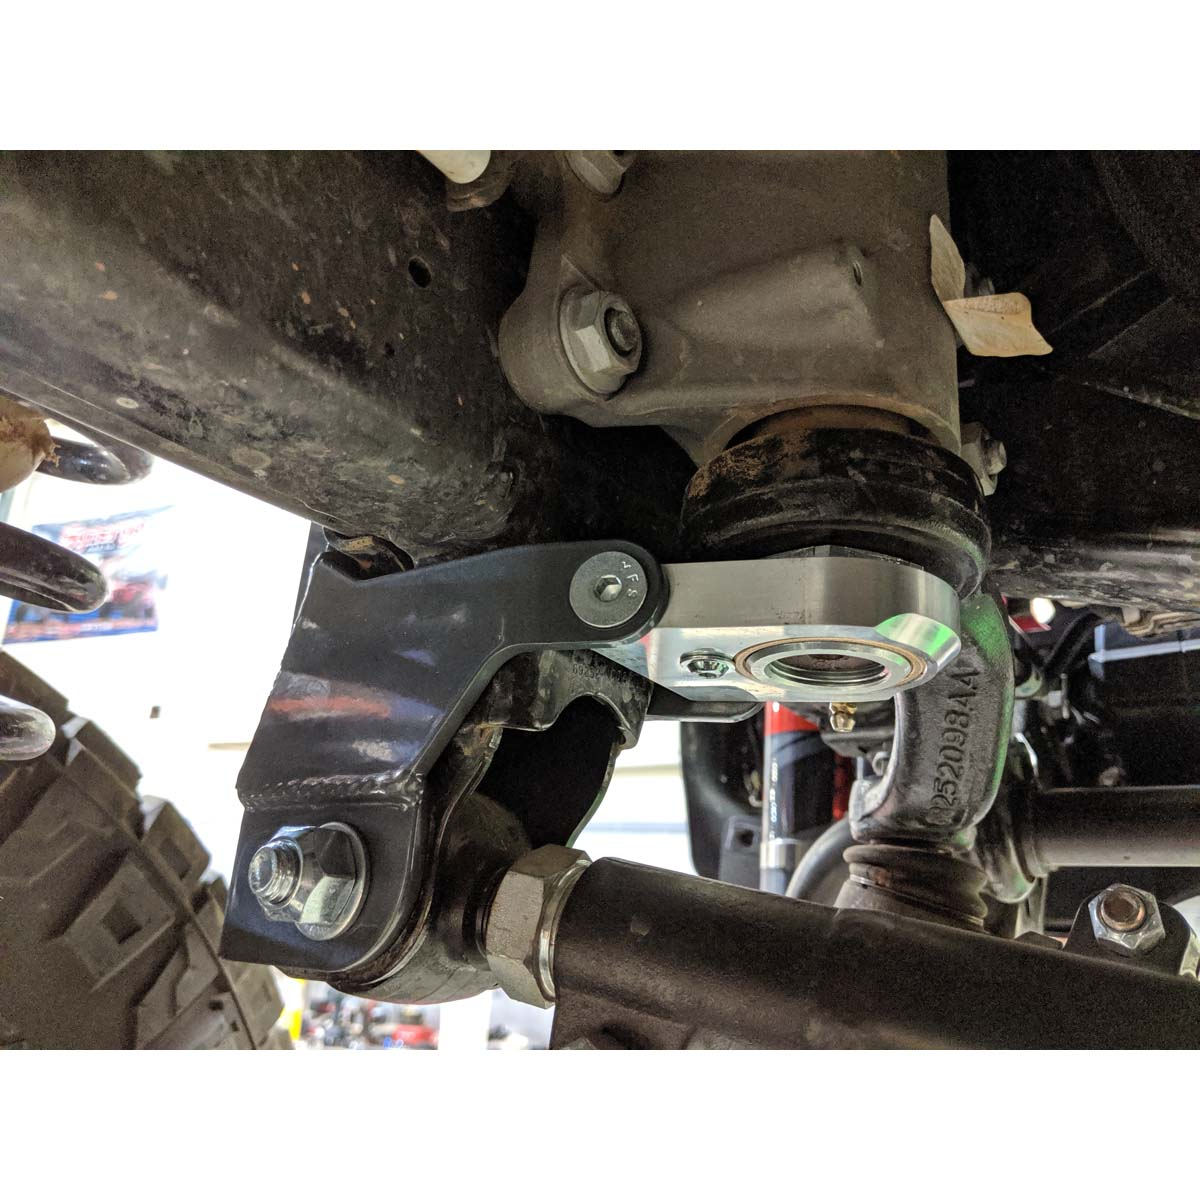 Synergy Jeep JL / JLU / JT Front Track Bar and Sector Shaft Brace